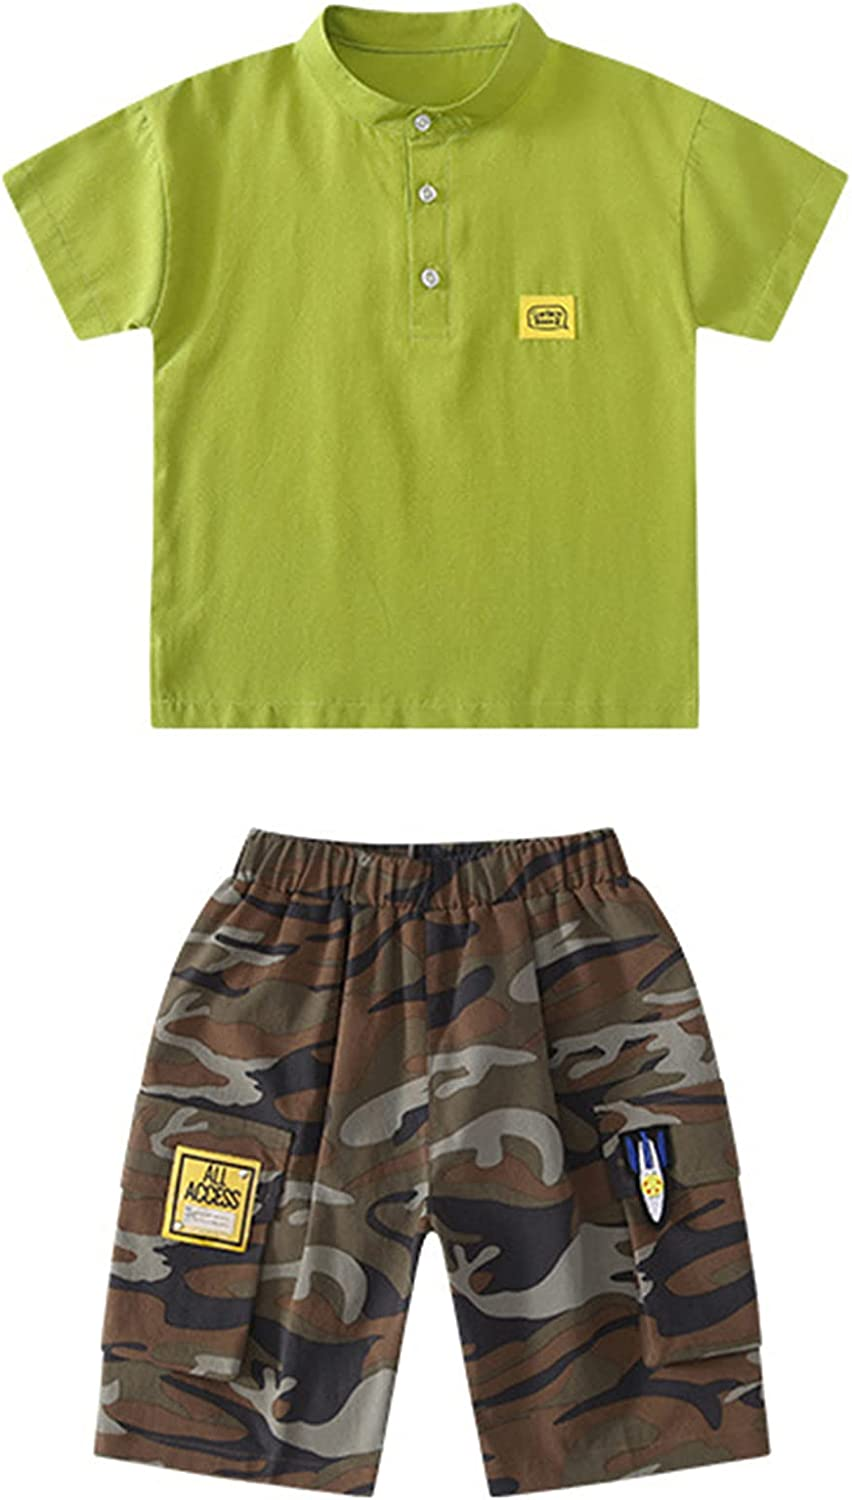 Aislor Toddler Boys Summer Clothes Band Collar Short Sleeves Letter Top T-Shirts with Camo Cargo Shorts 2Pcs Set